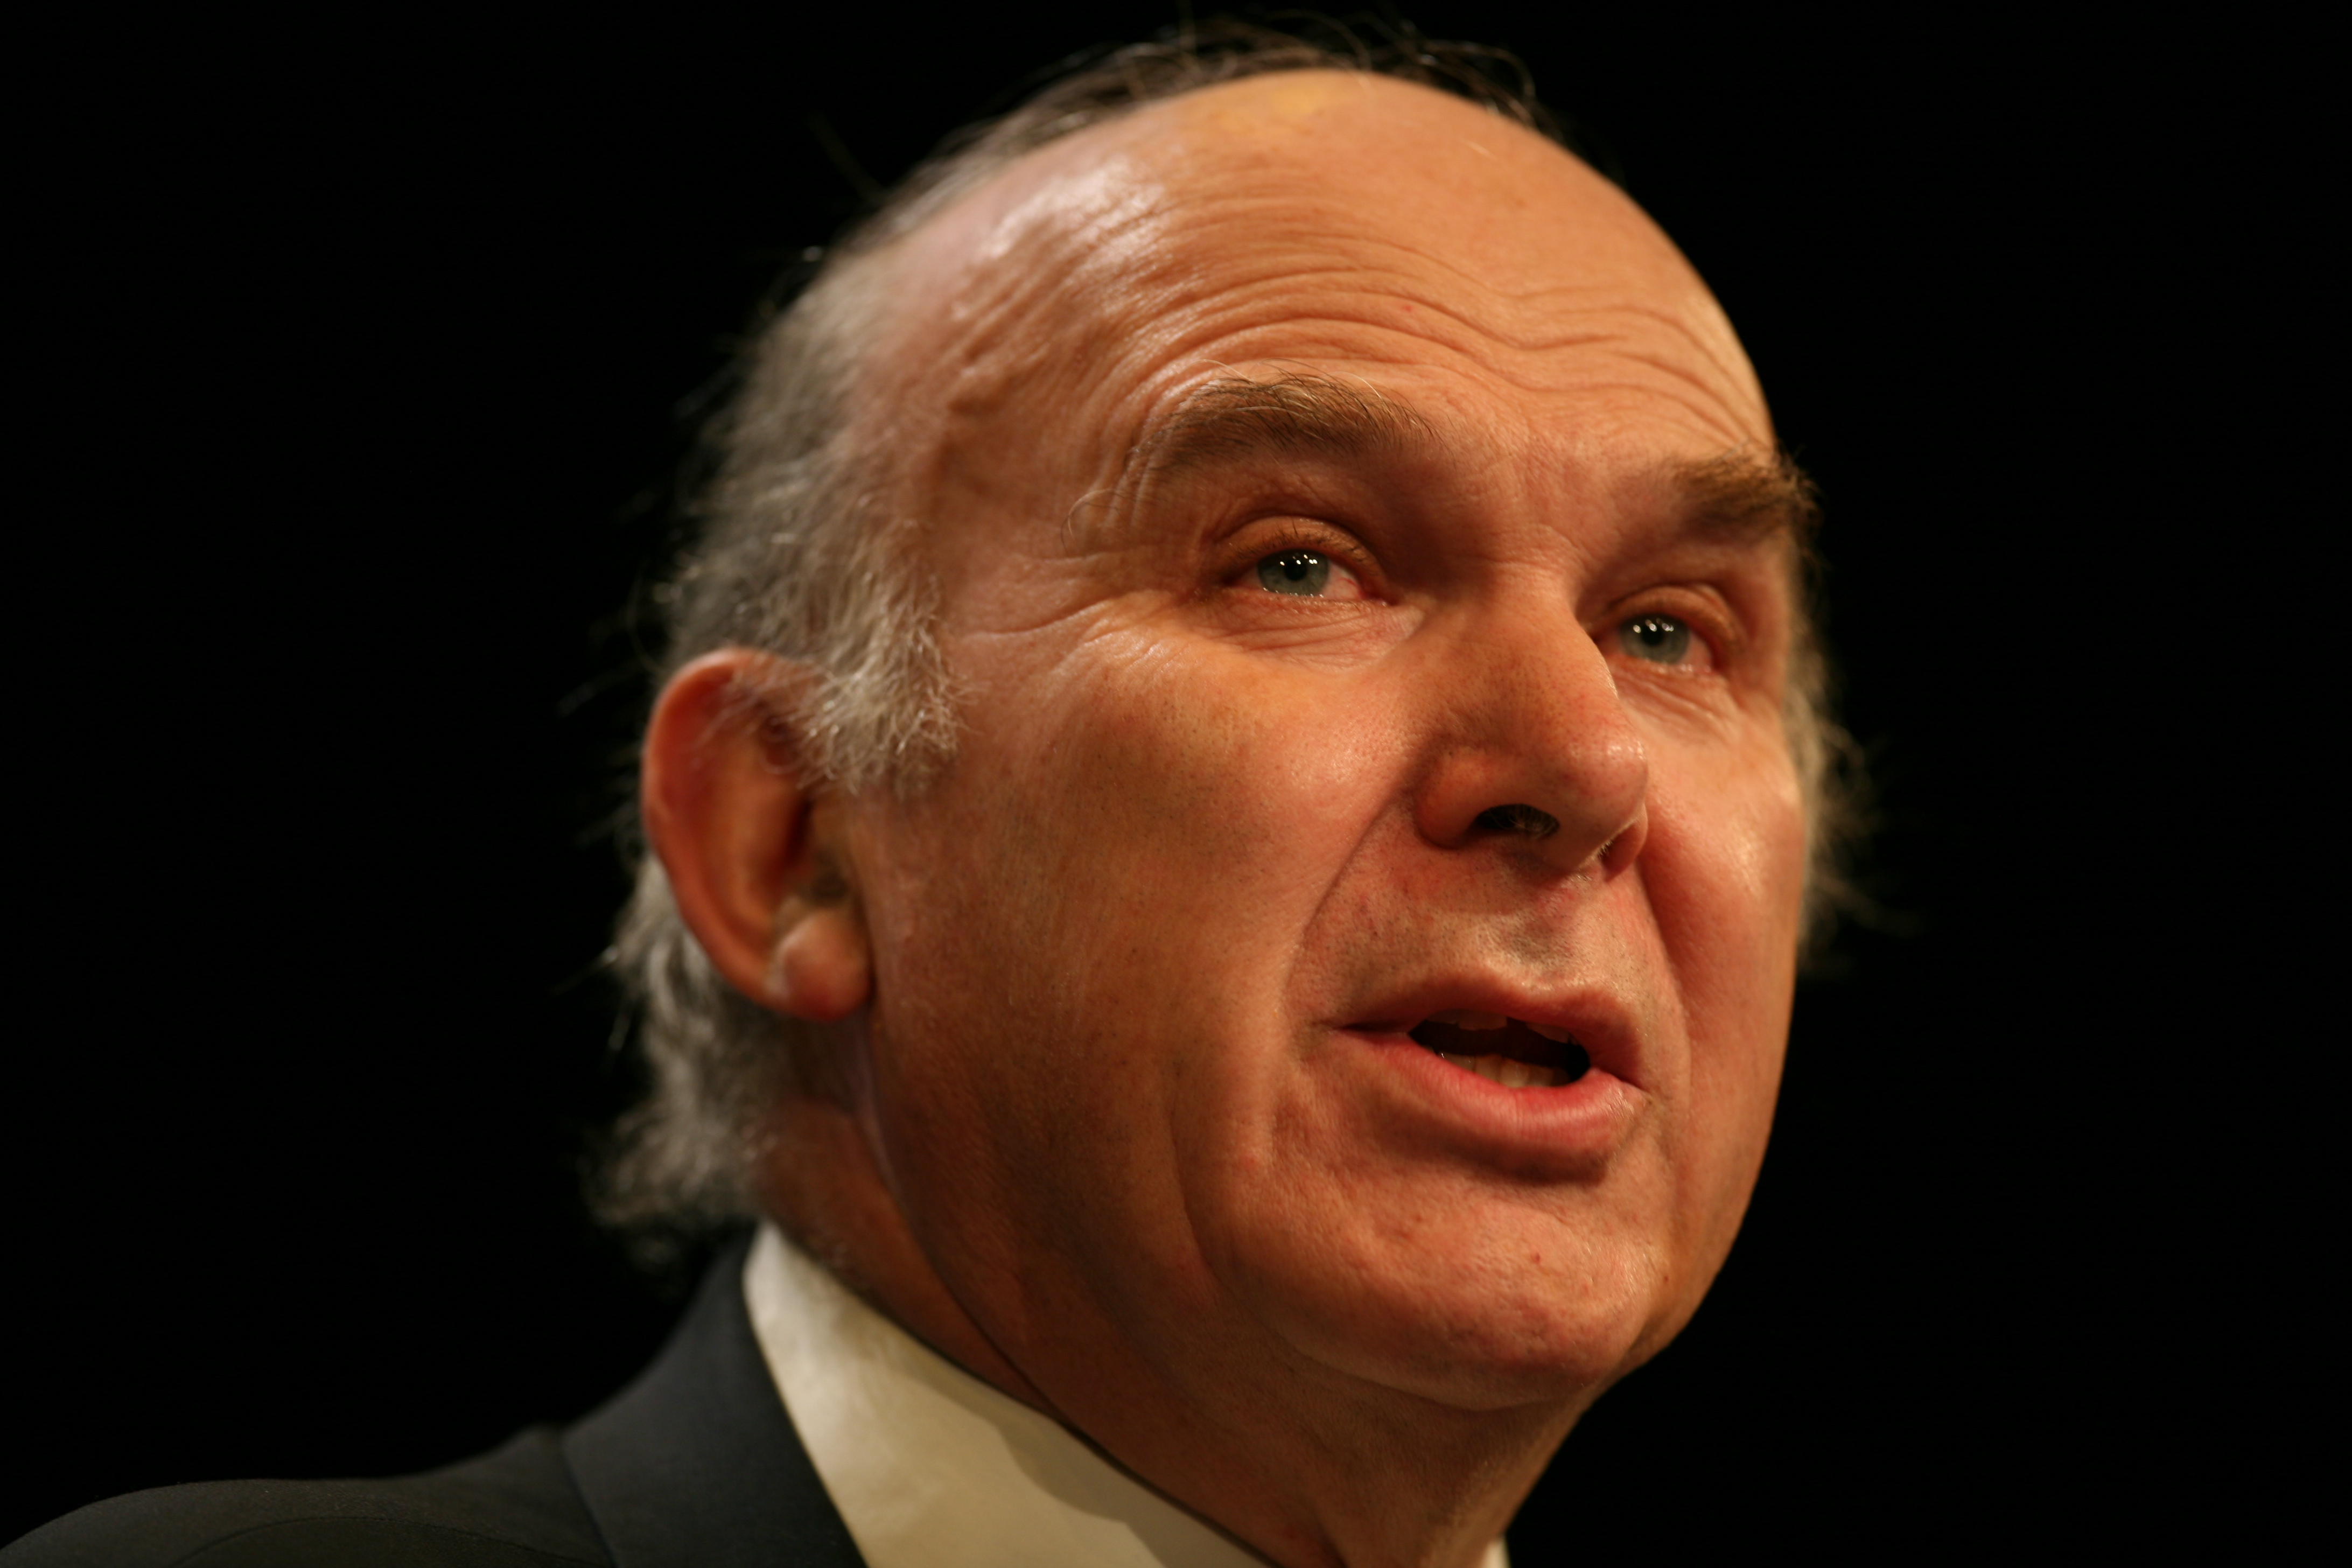 Exclusive: Vince Cable on UK's manufacturing future